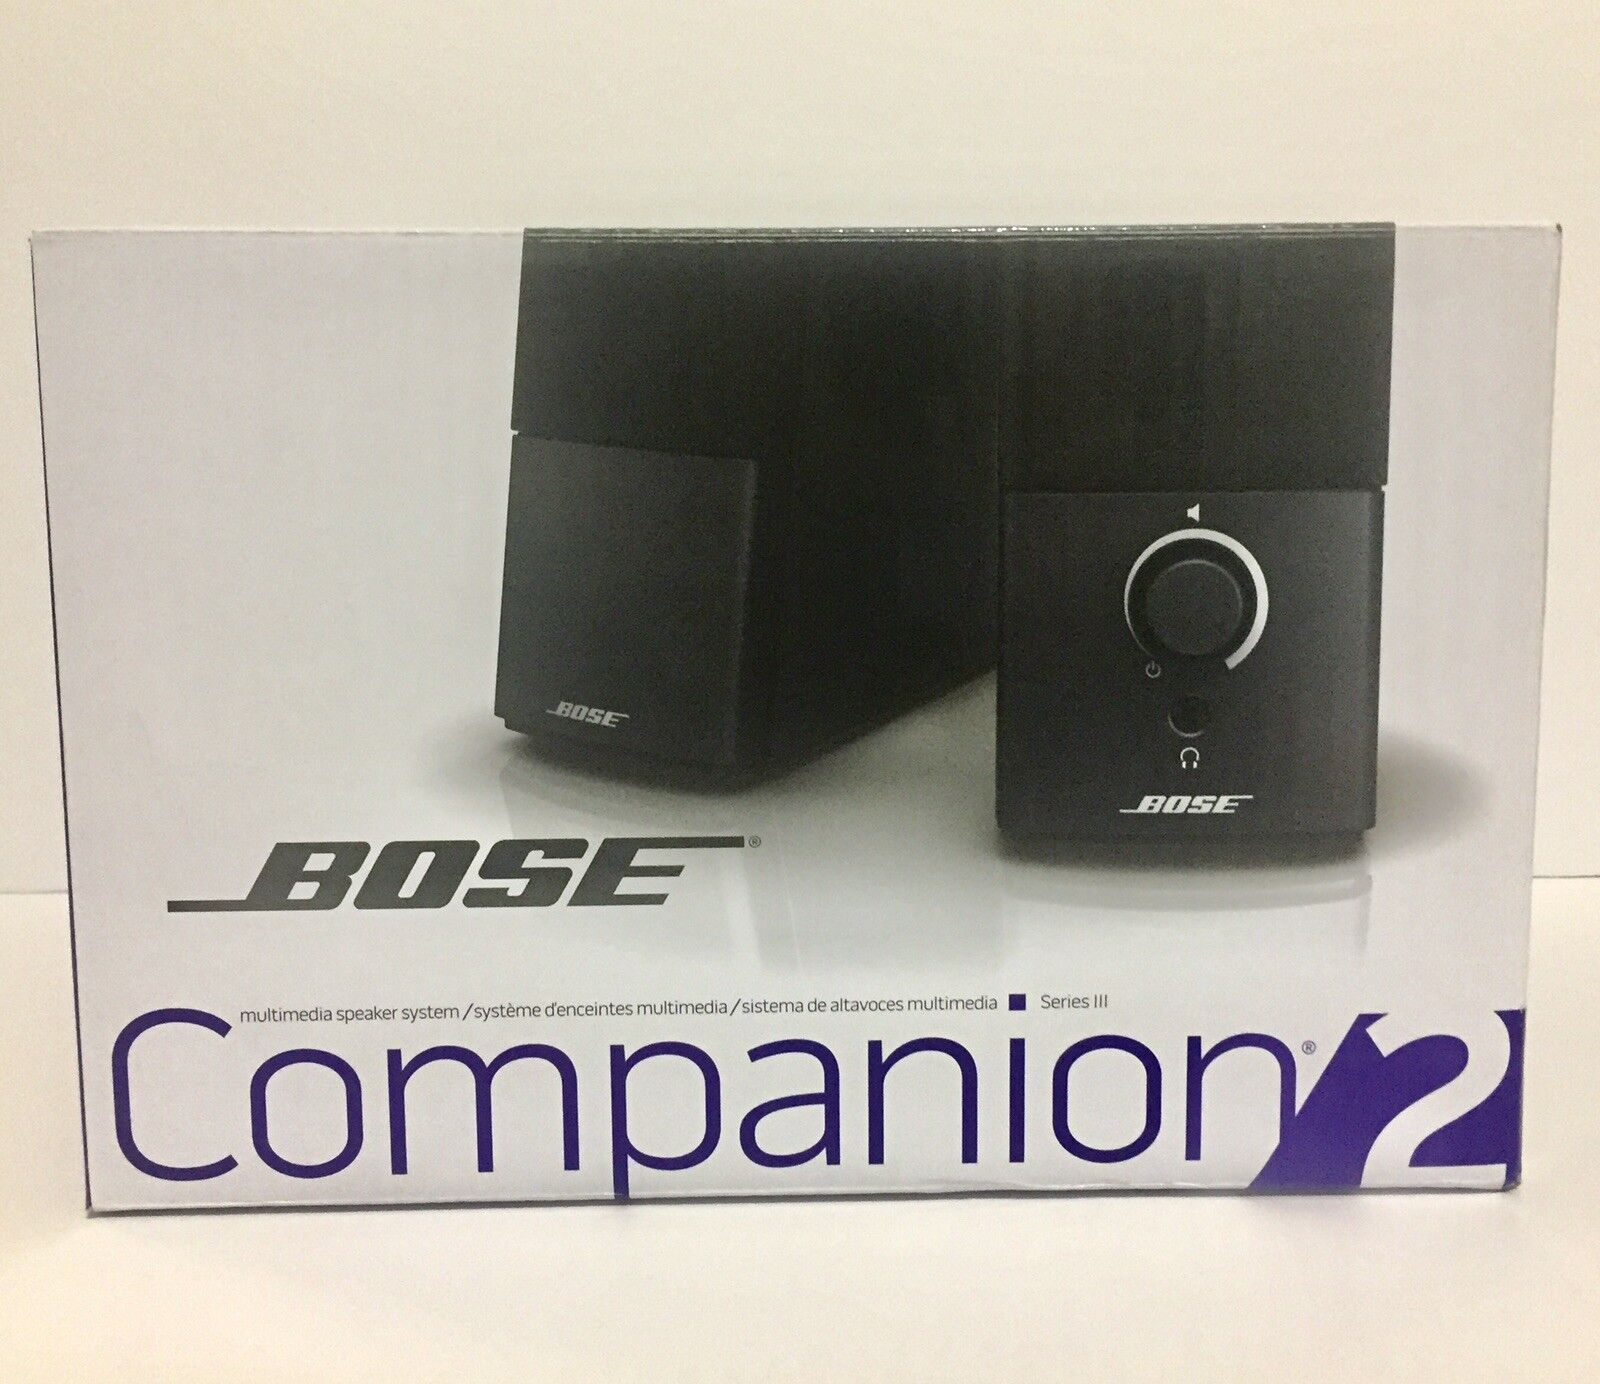 bose computer speakers. picture 1 of bose computer speakers m